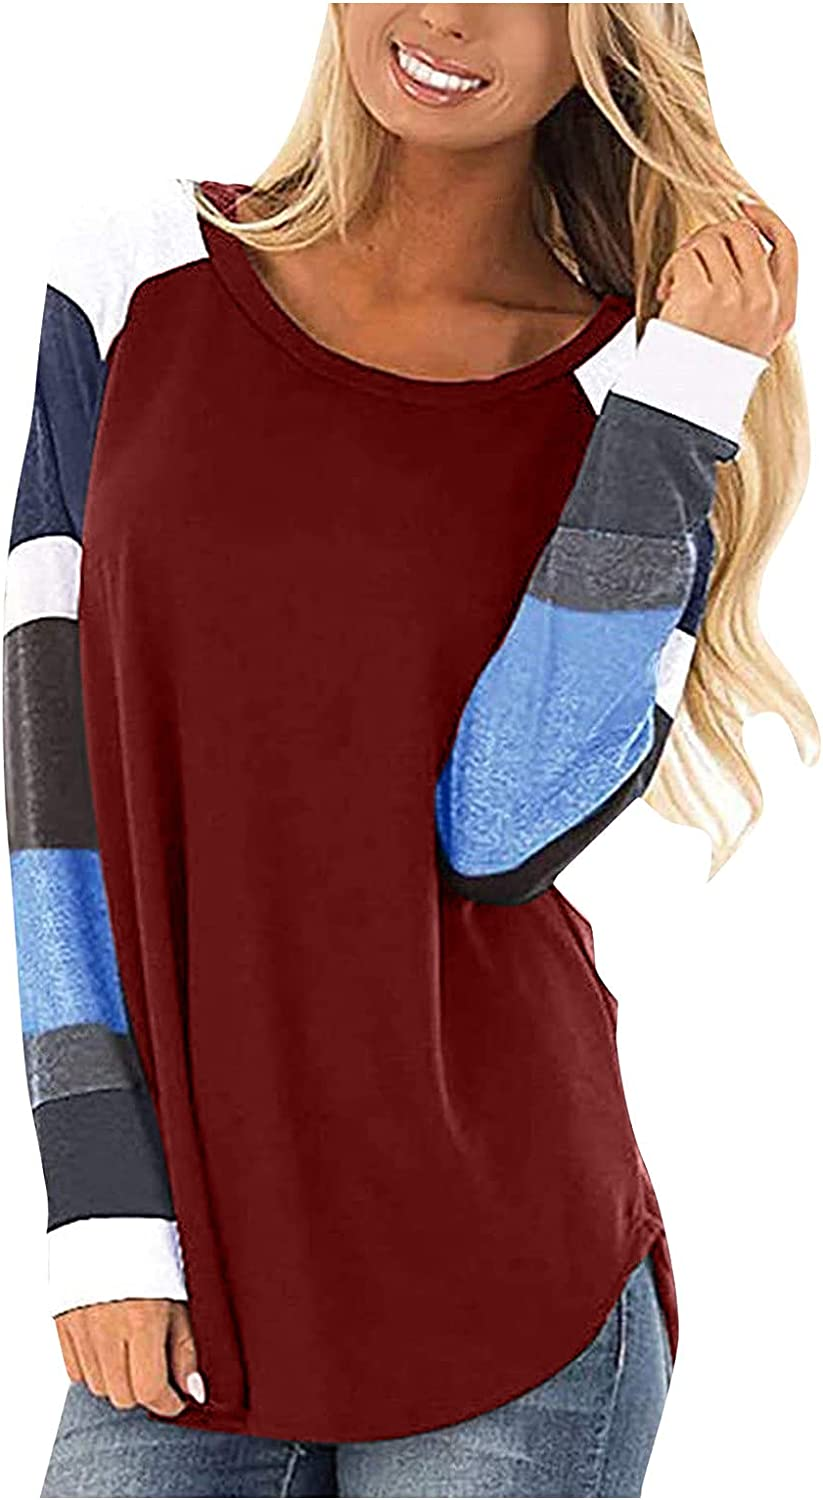 felwors Plus Size Tops for Women, Womens Color Block Round Neck Loose T Shirts Blouses Casual Long Sleeve Tunic Tops